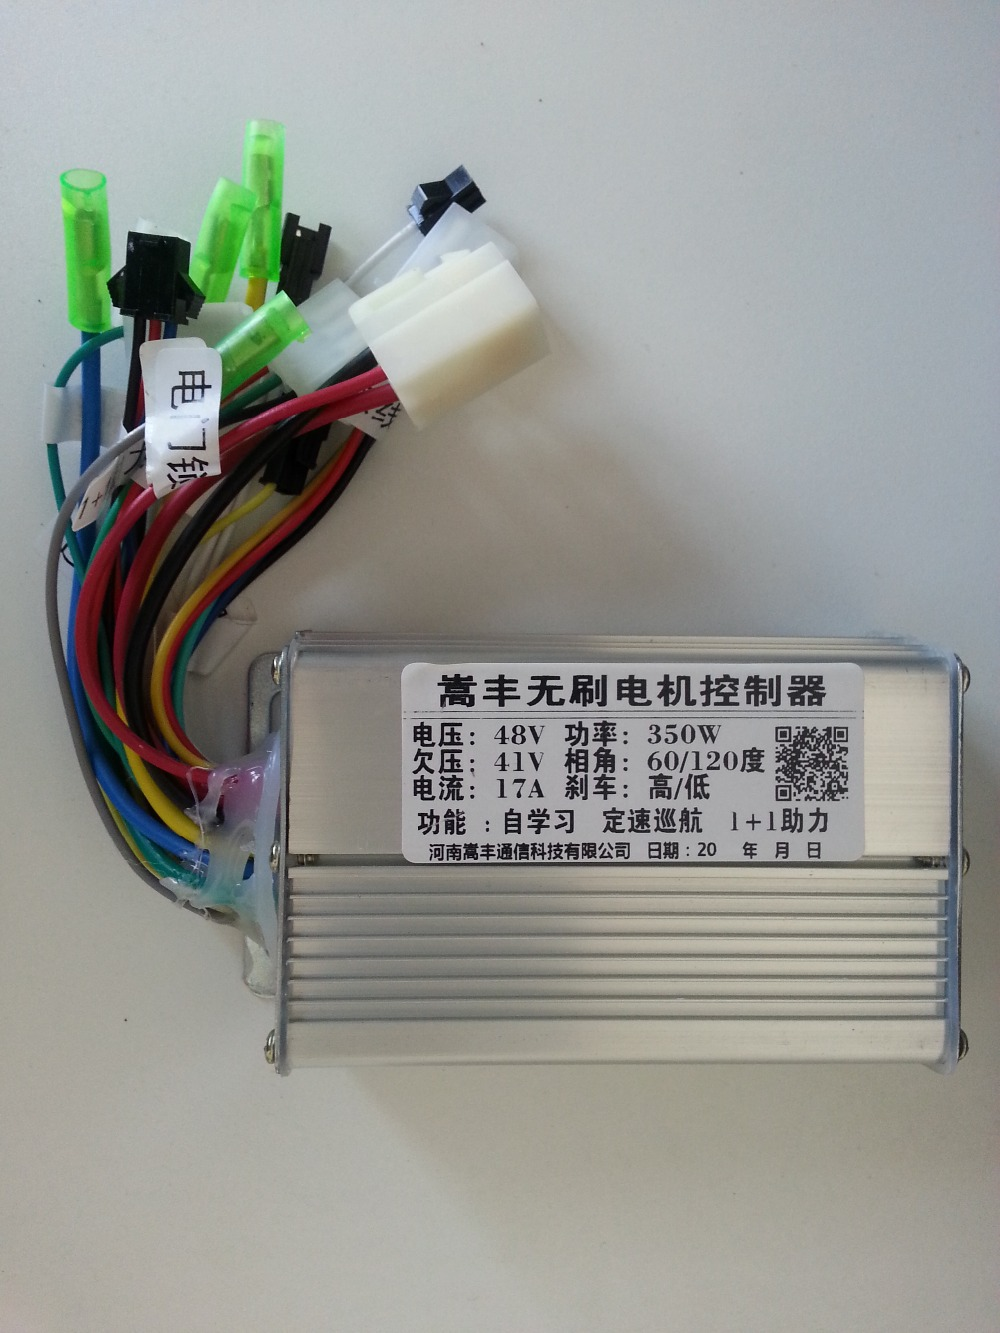 SF Cheap 36V/48V 350W 17-18Amax BLDC Motor Controller Electric Bike Tricycle Controller Driver(China (Mainland))